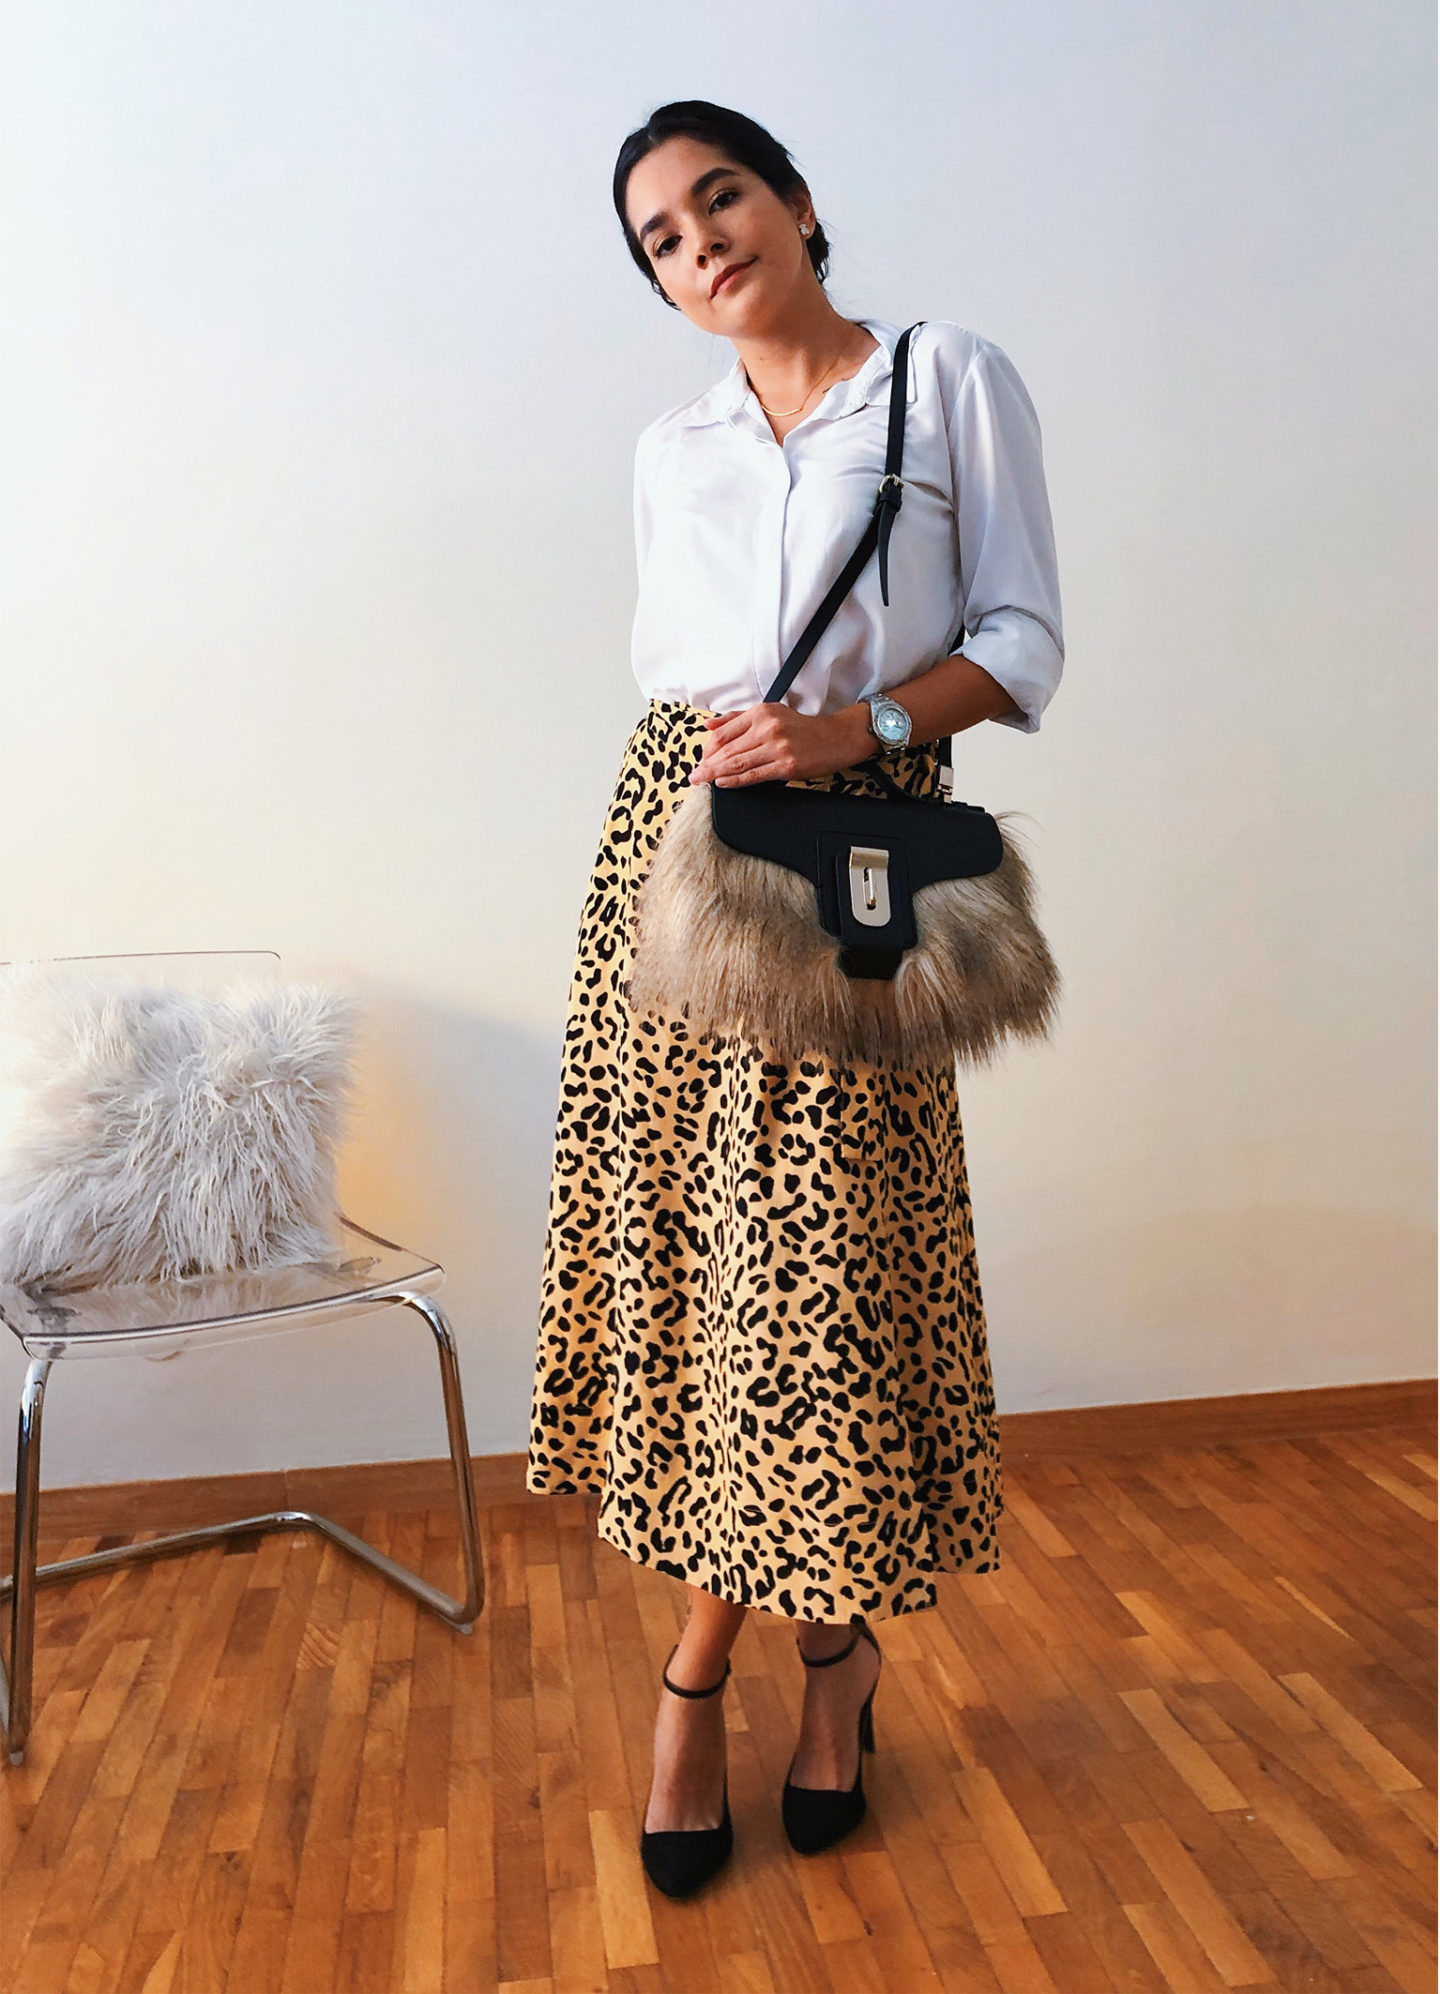 como-usar-una-falda-animal-print-para-un-look-formal-o-de-oficina